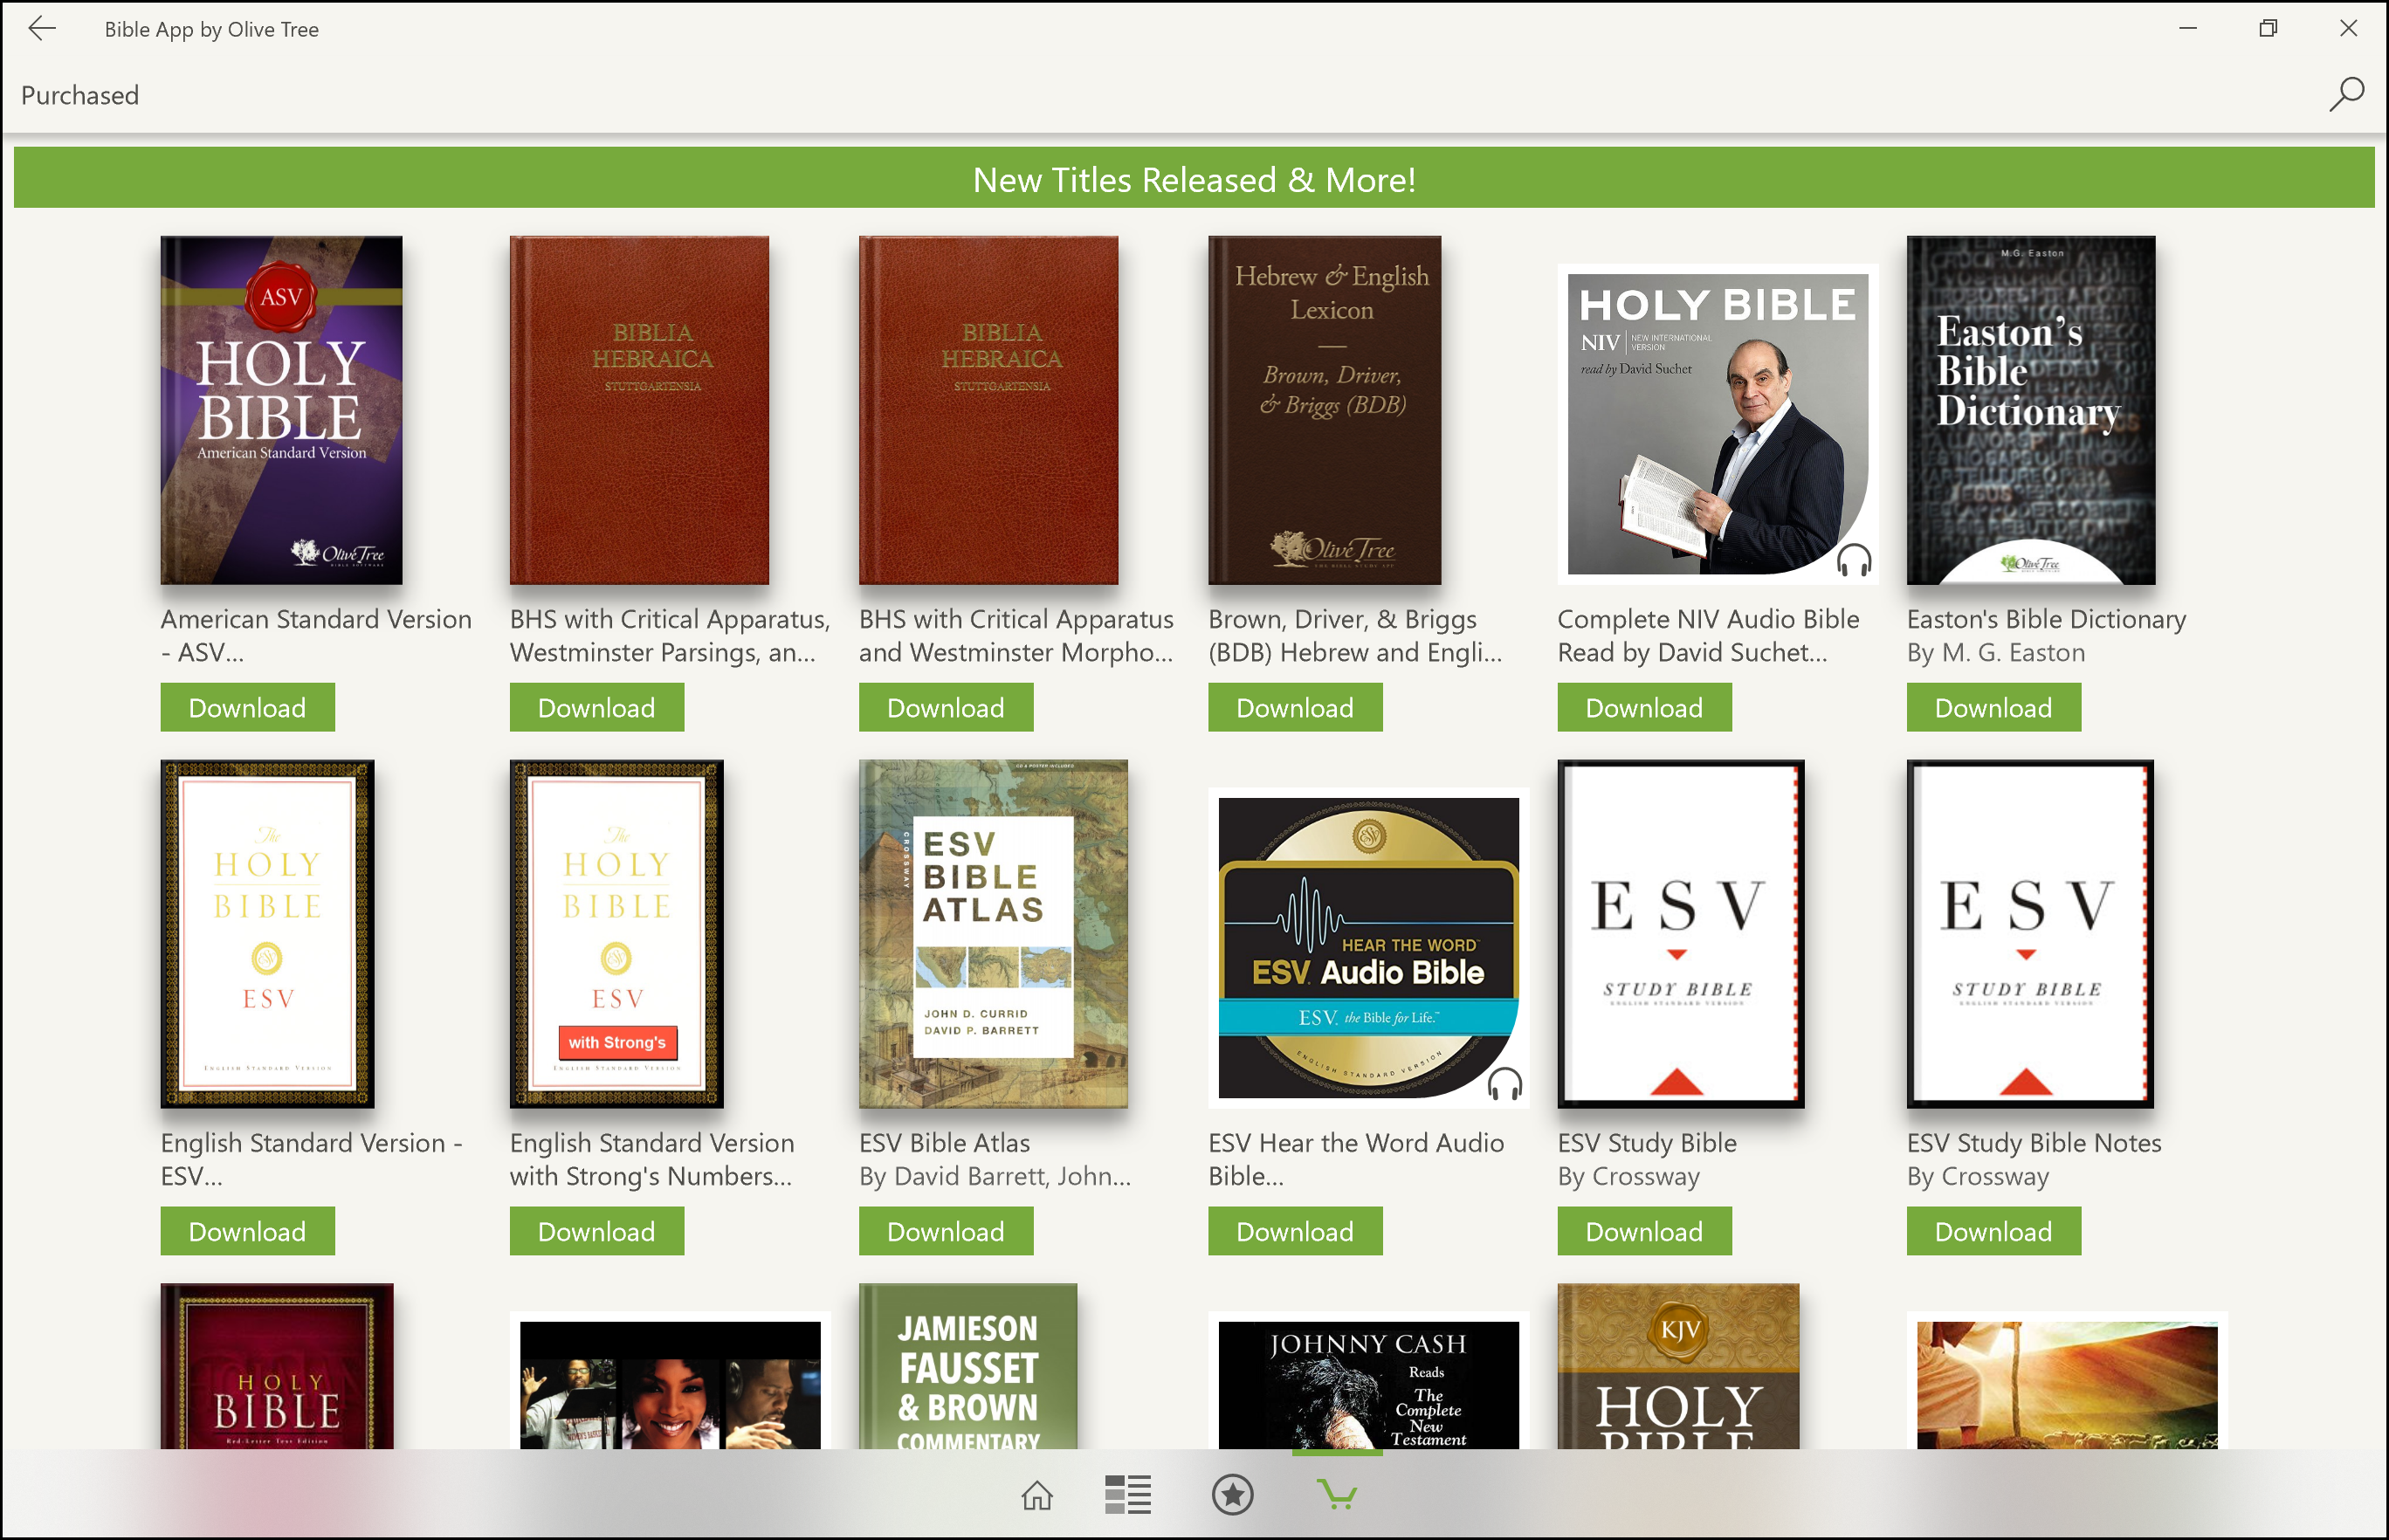 Windows - Downloading your Purchases – Olive Tree